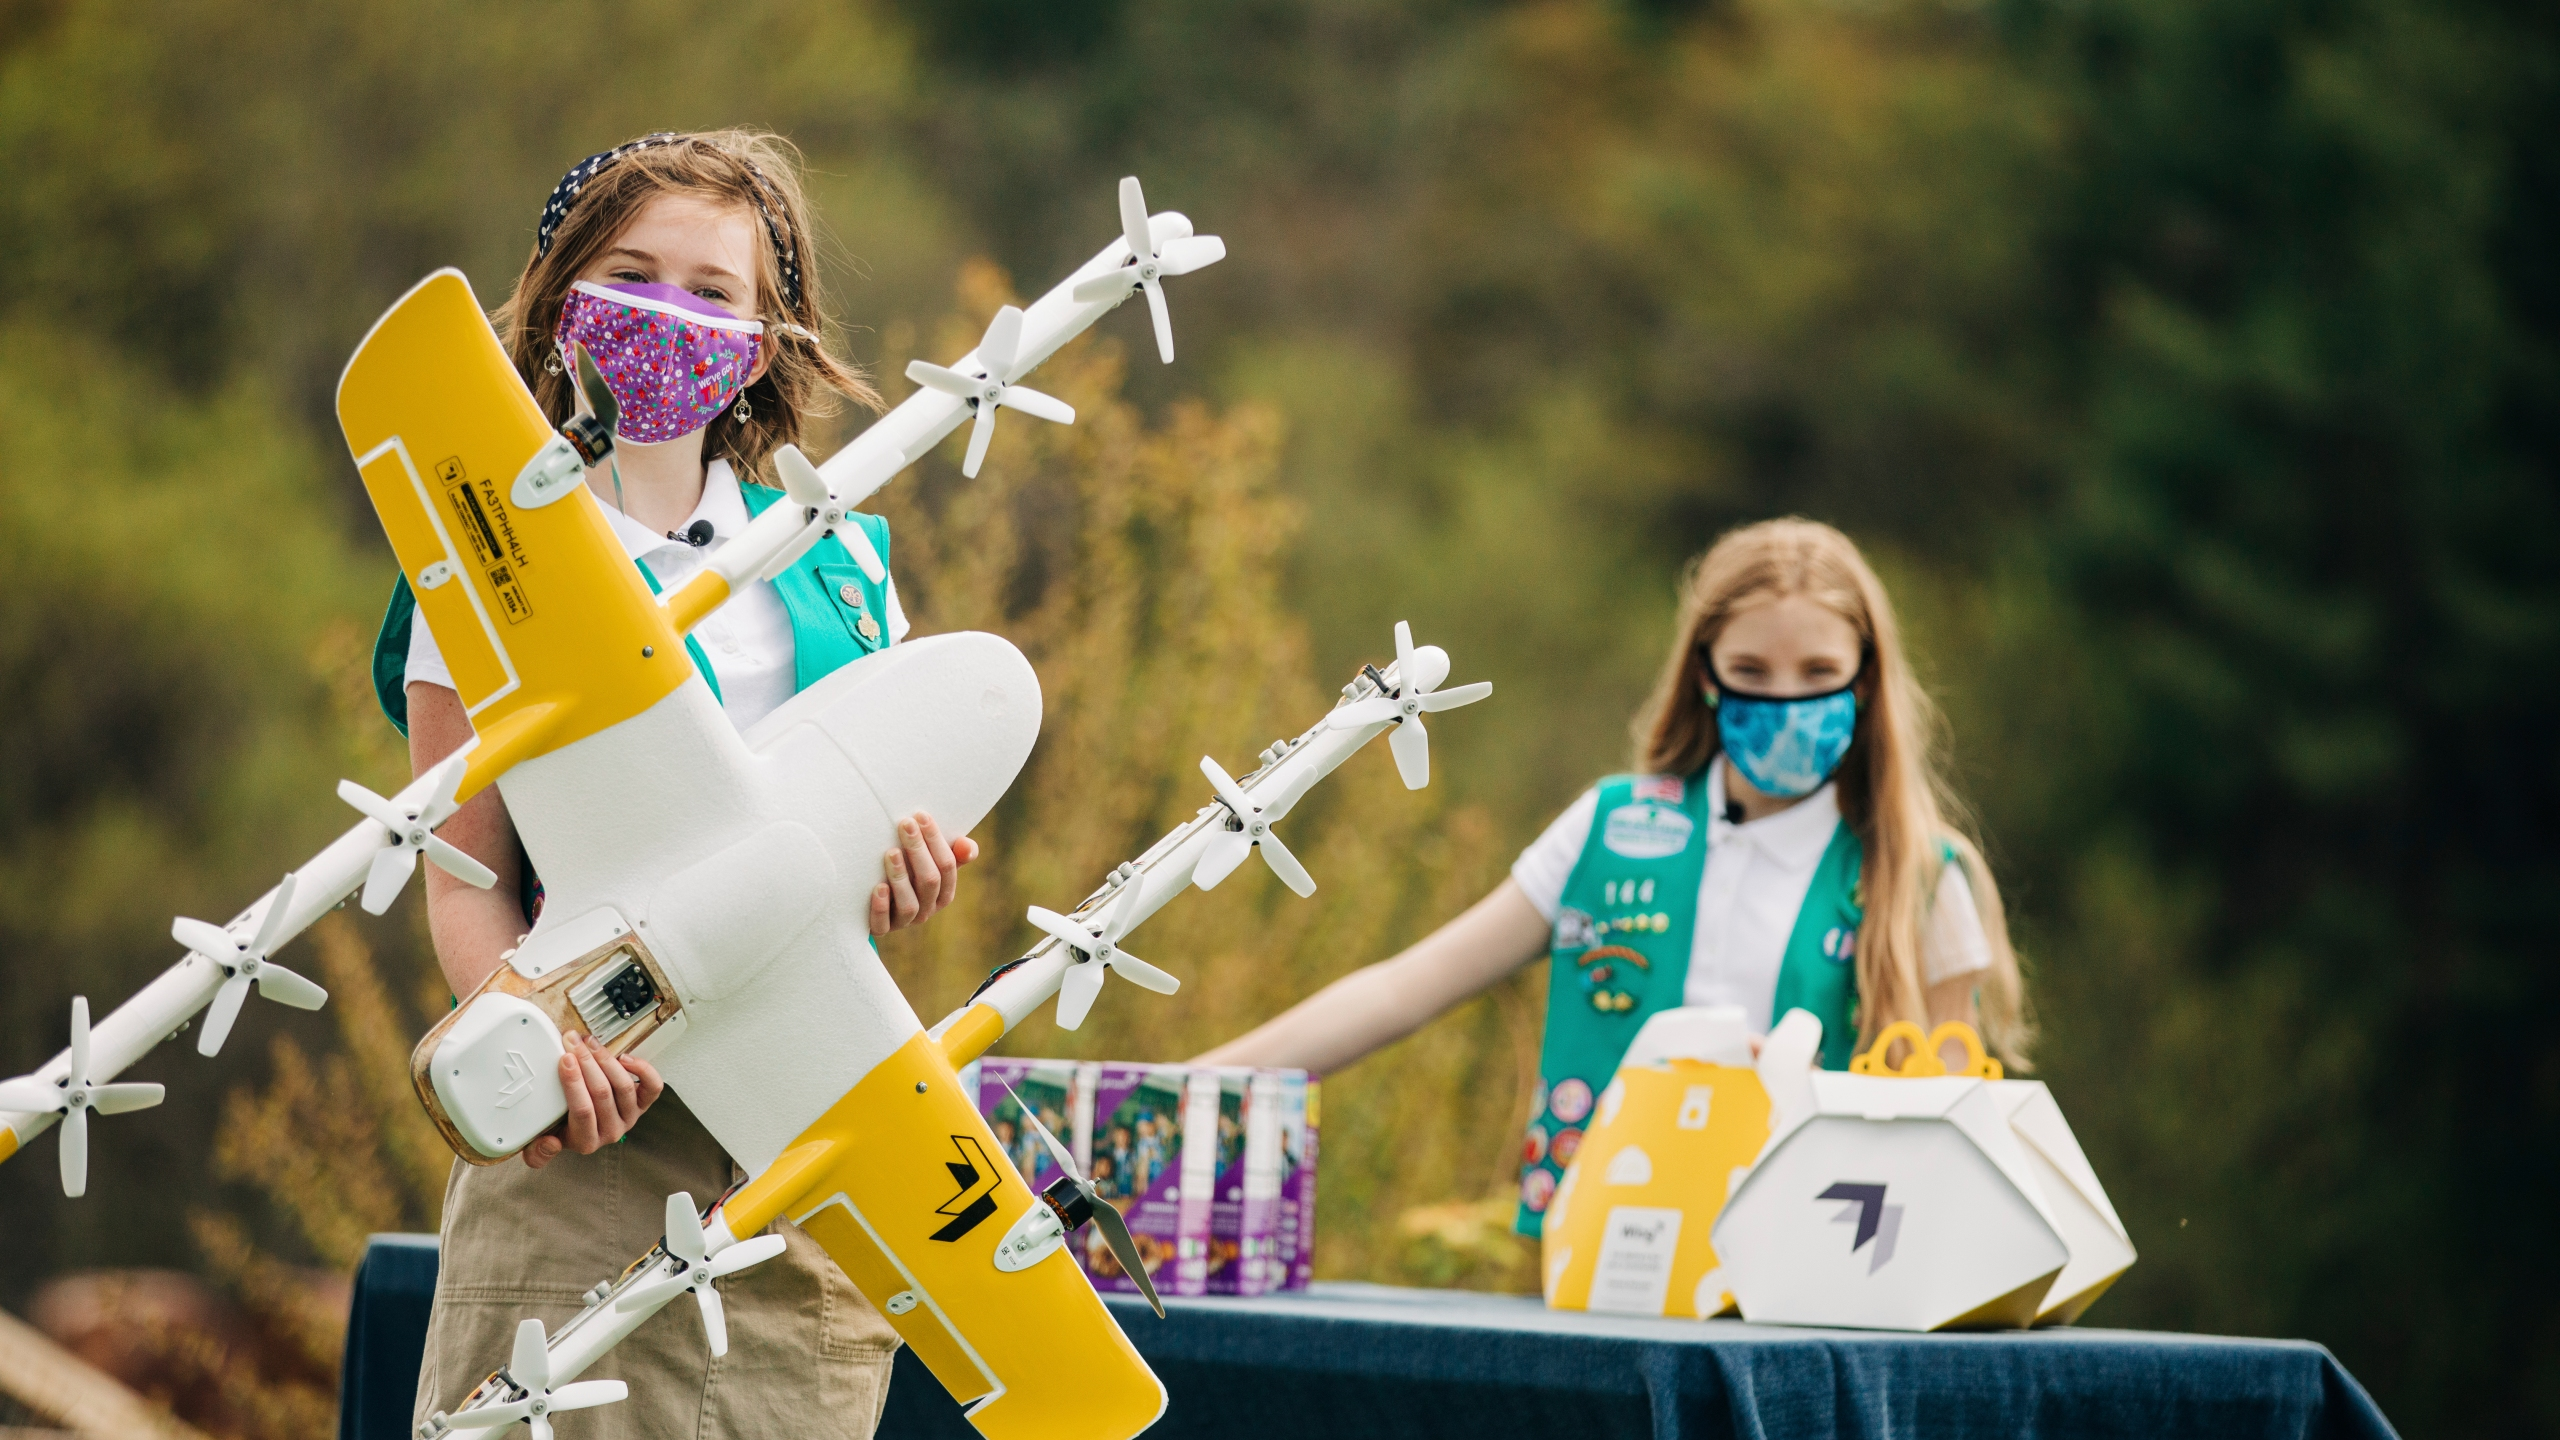 In this April 14, 2021 image provided by Wing LLC., Girl Scouts Alice Goerlich, right, and Gracie Walker pose with a Wing delivery drone in Christiansburg, Va. The company is testing drone delivery of Girl Scout cookies in the area. (Sam Dean/ Wing LLC via AP)